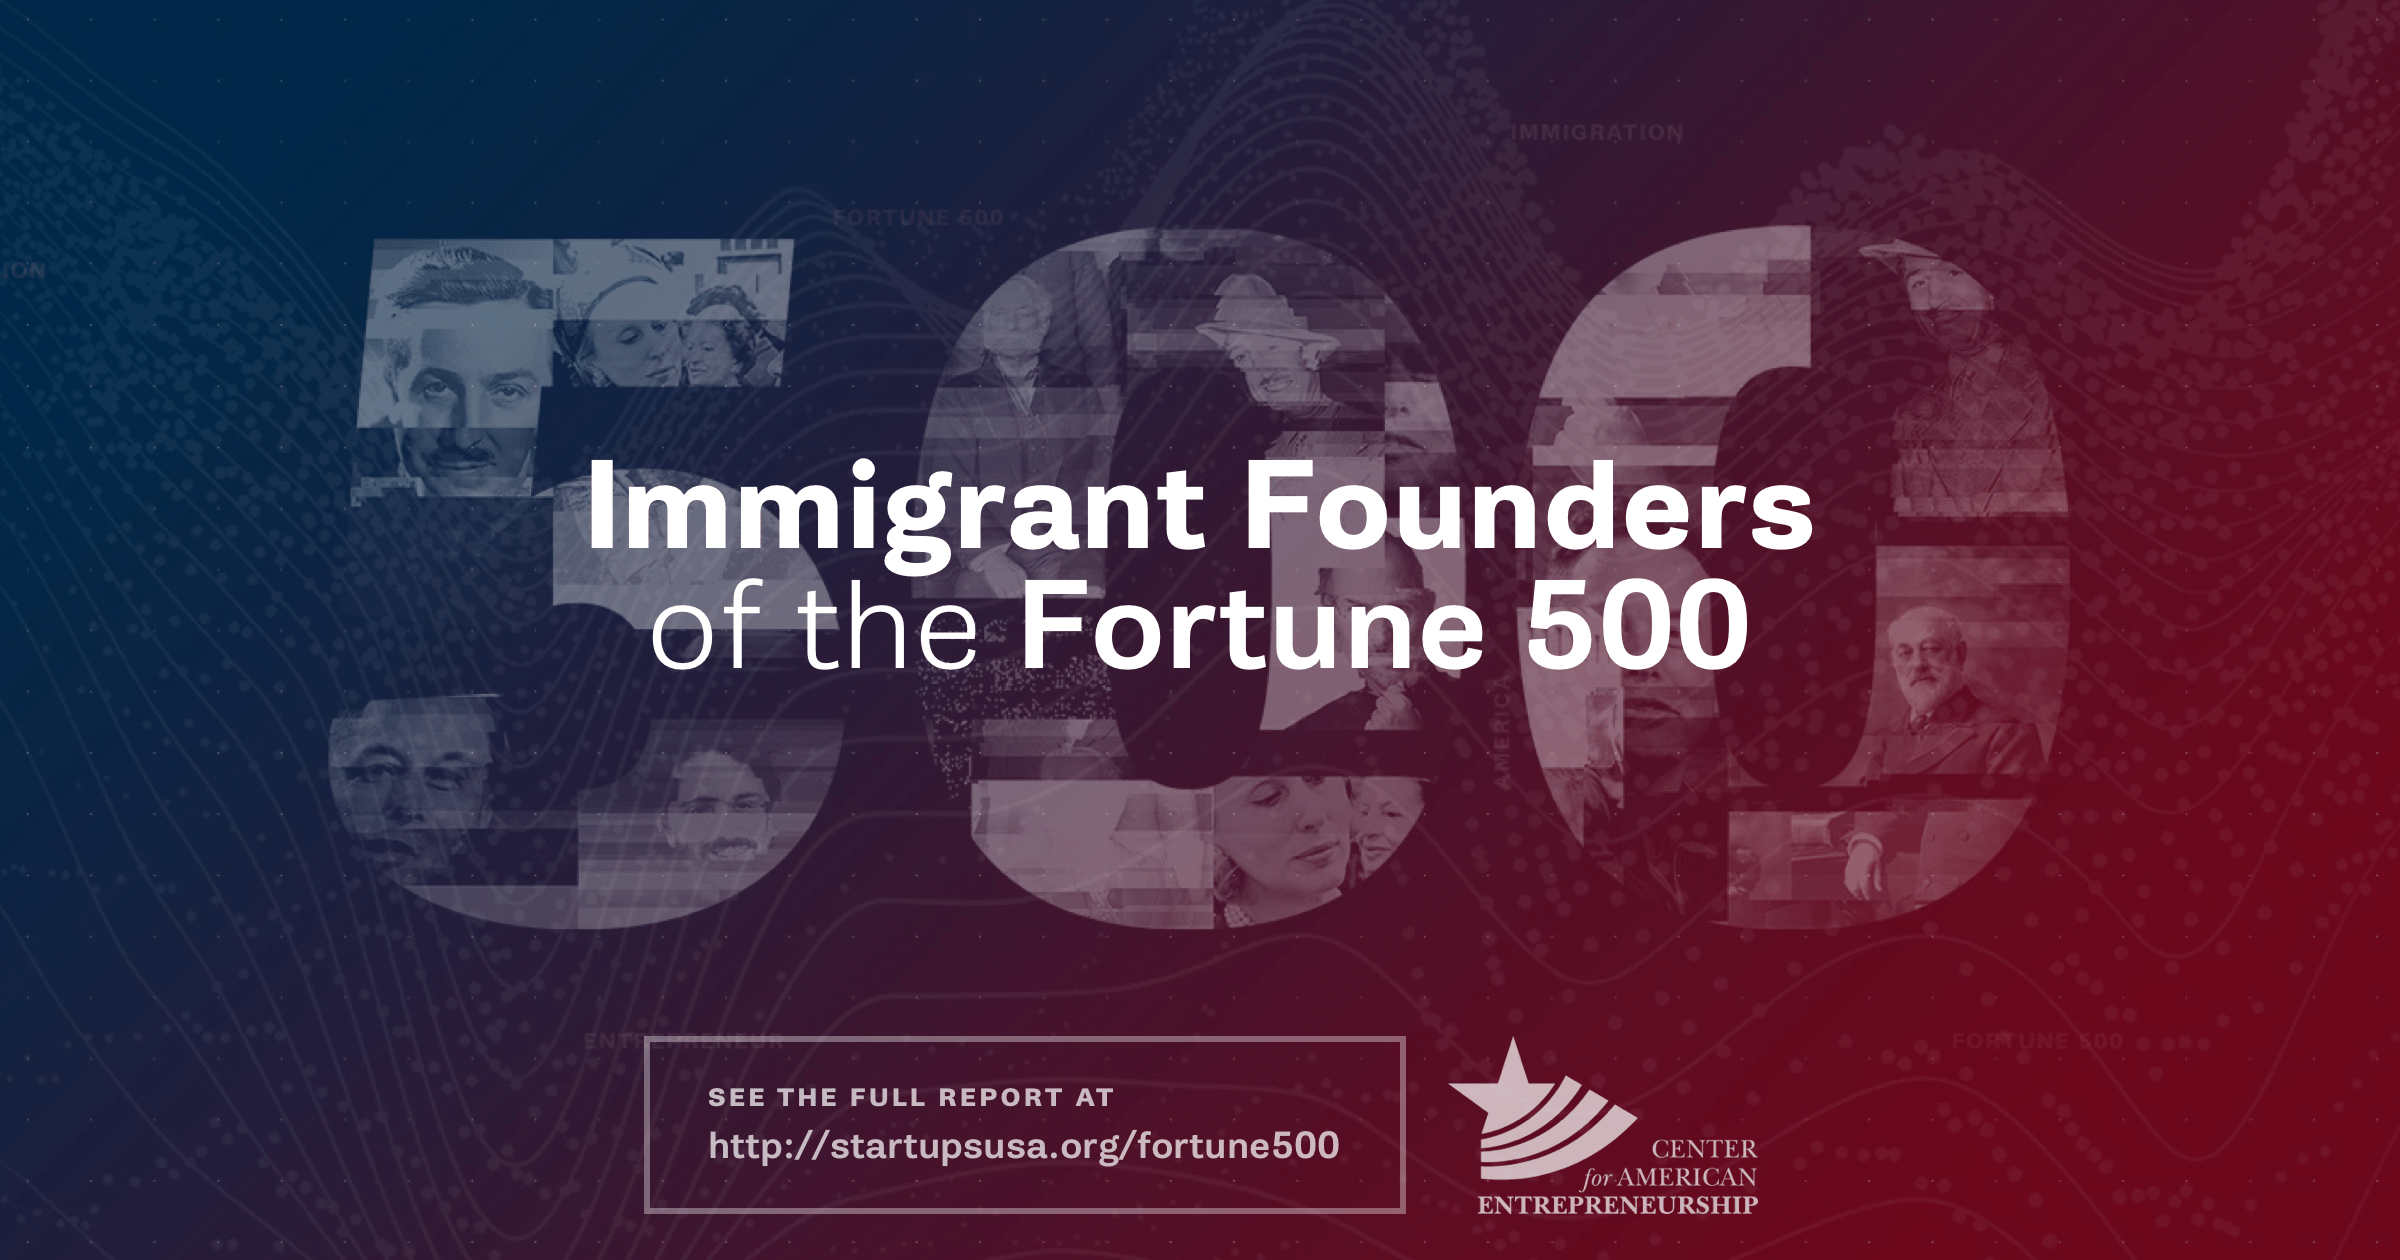 Immigrant Founders of the 2017 Fortune 500